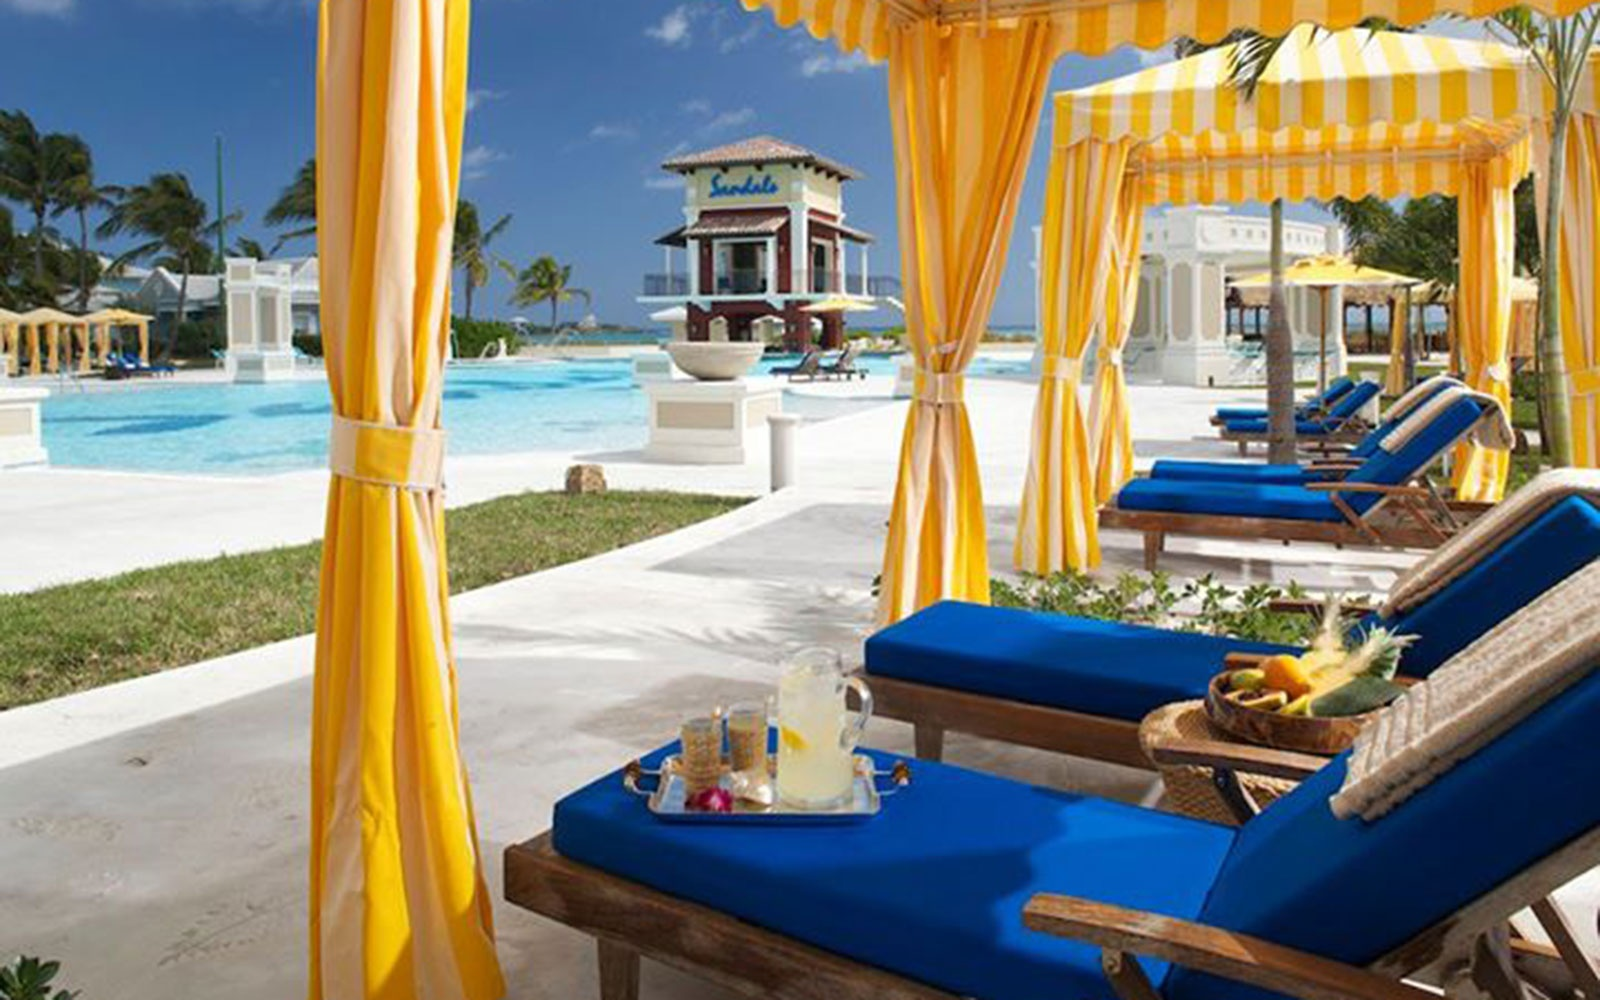 Best in the Caribbean: Sandals Emerald Bay